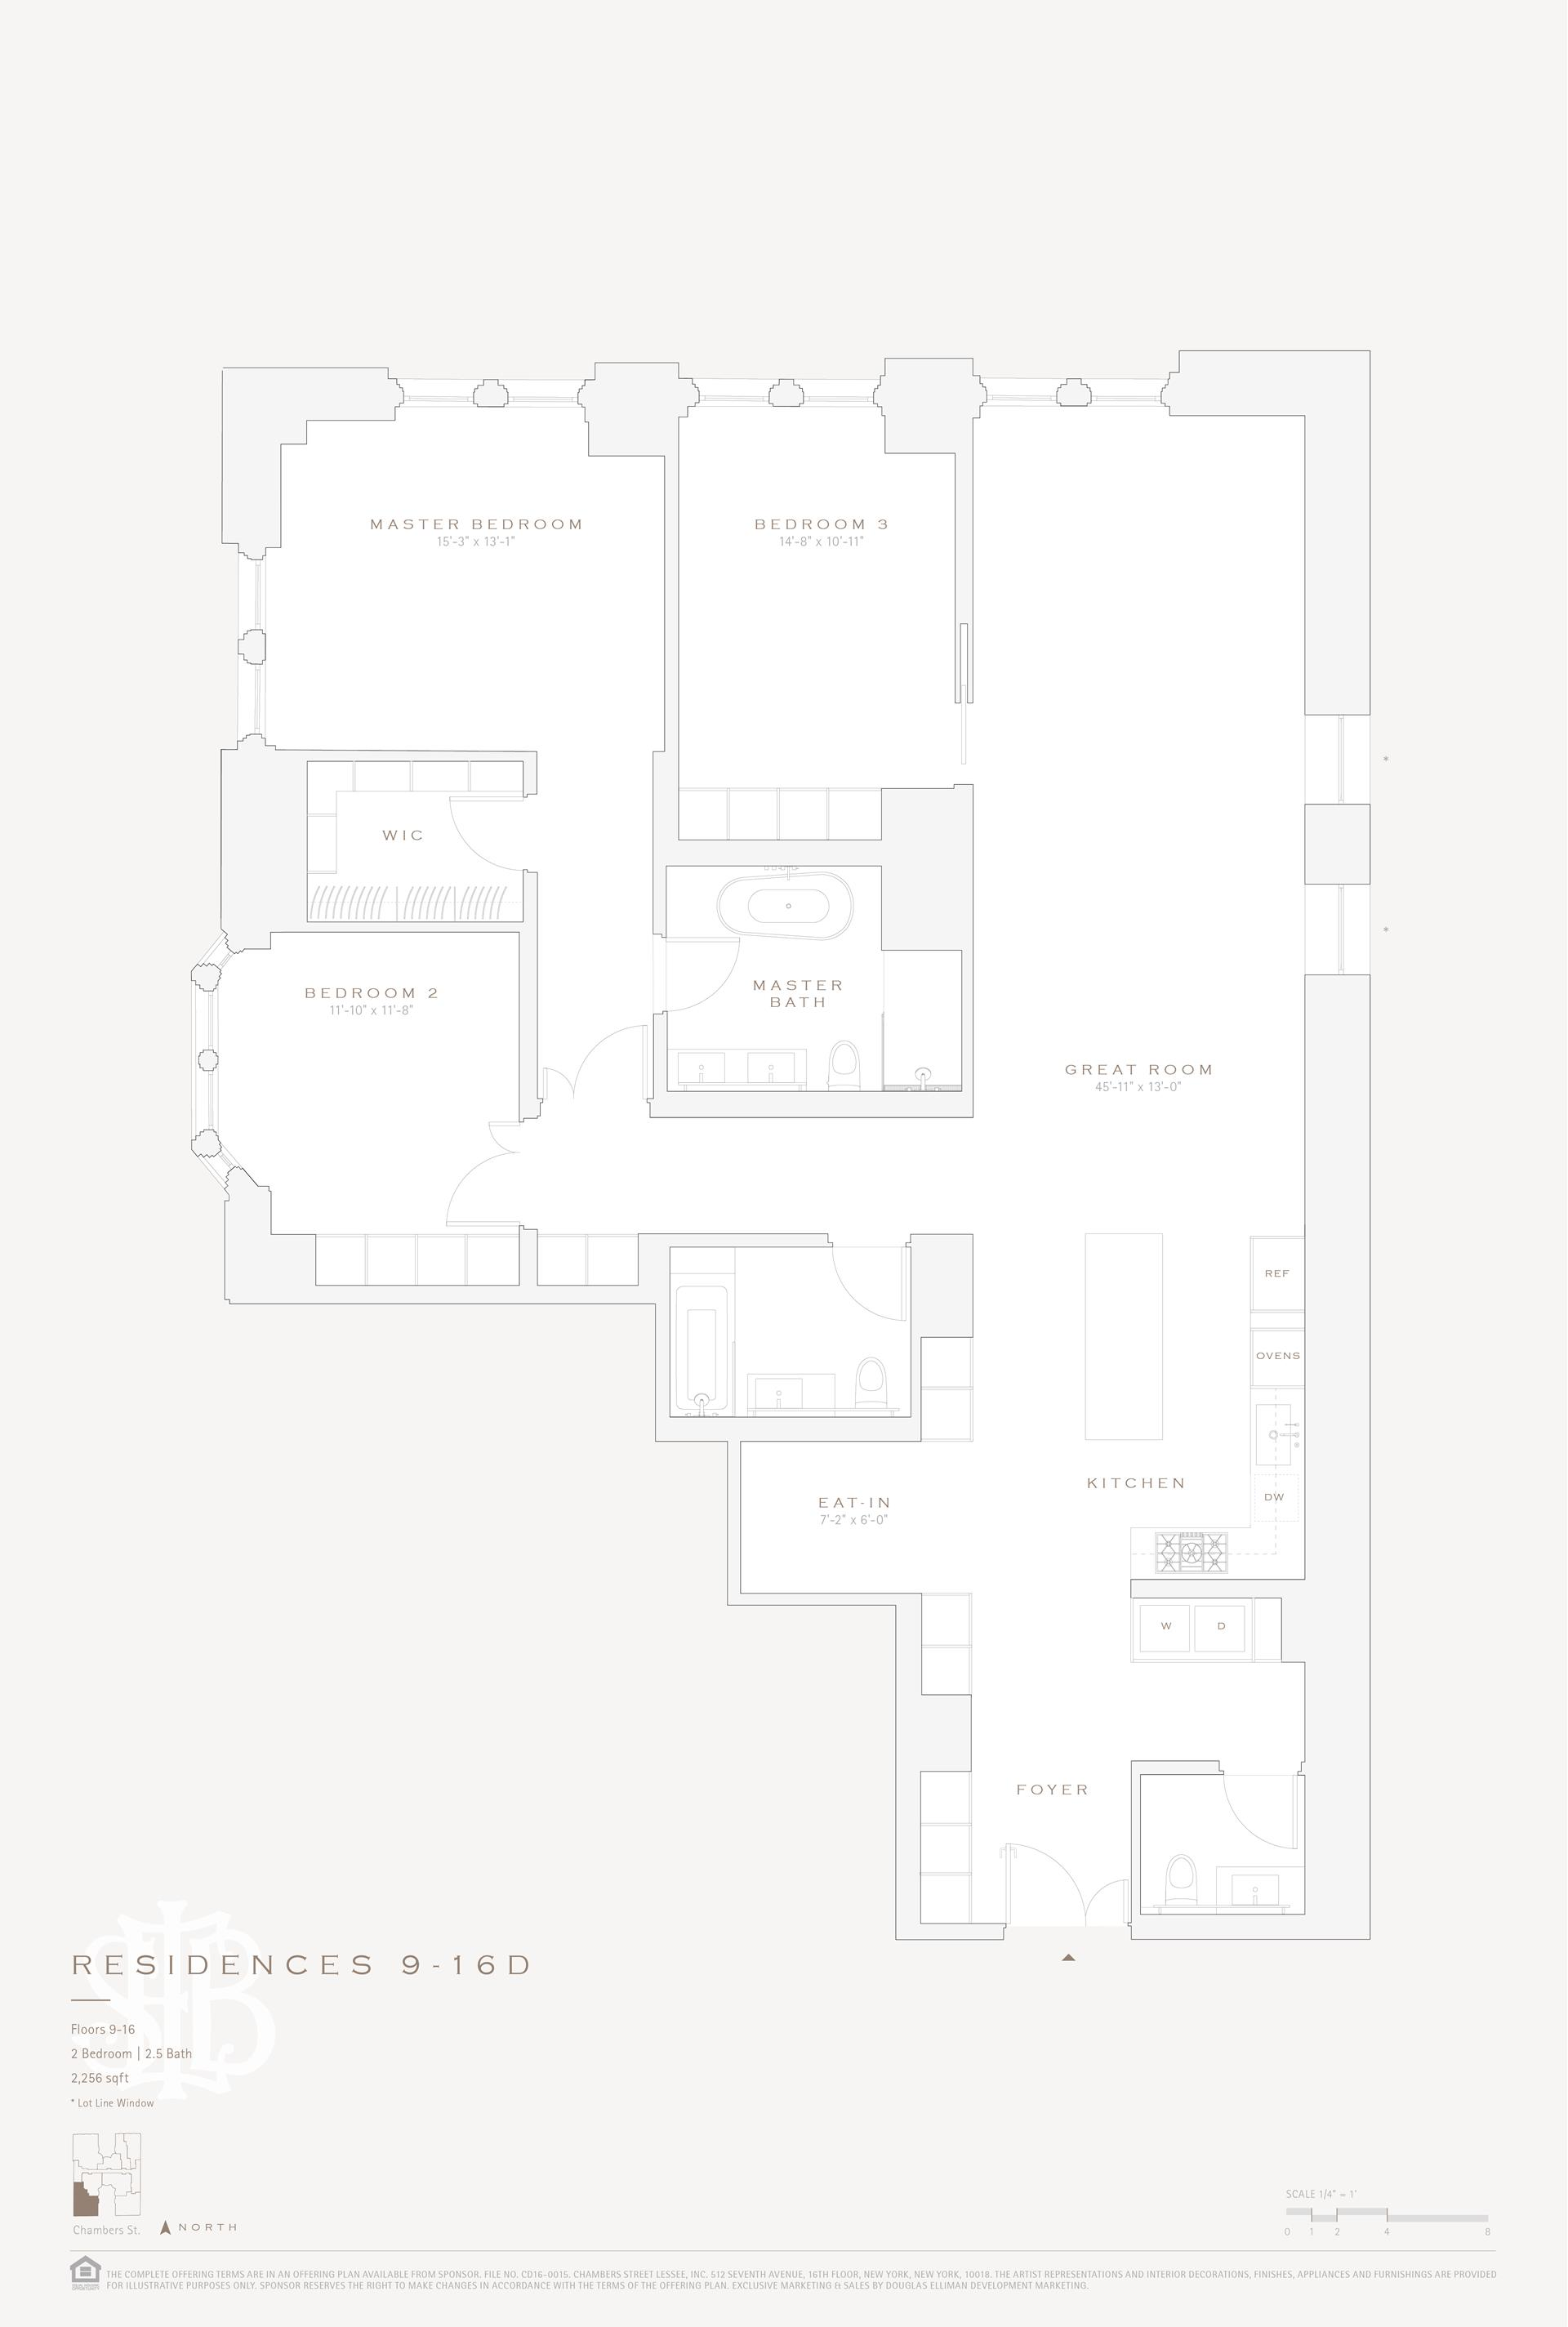 Floor plan of 49 Chambers St, 14D - TriBeCa, New York